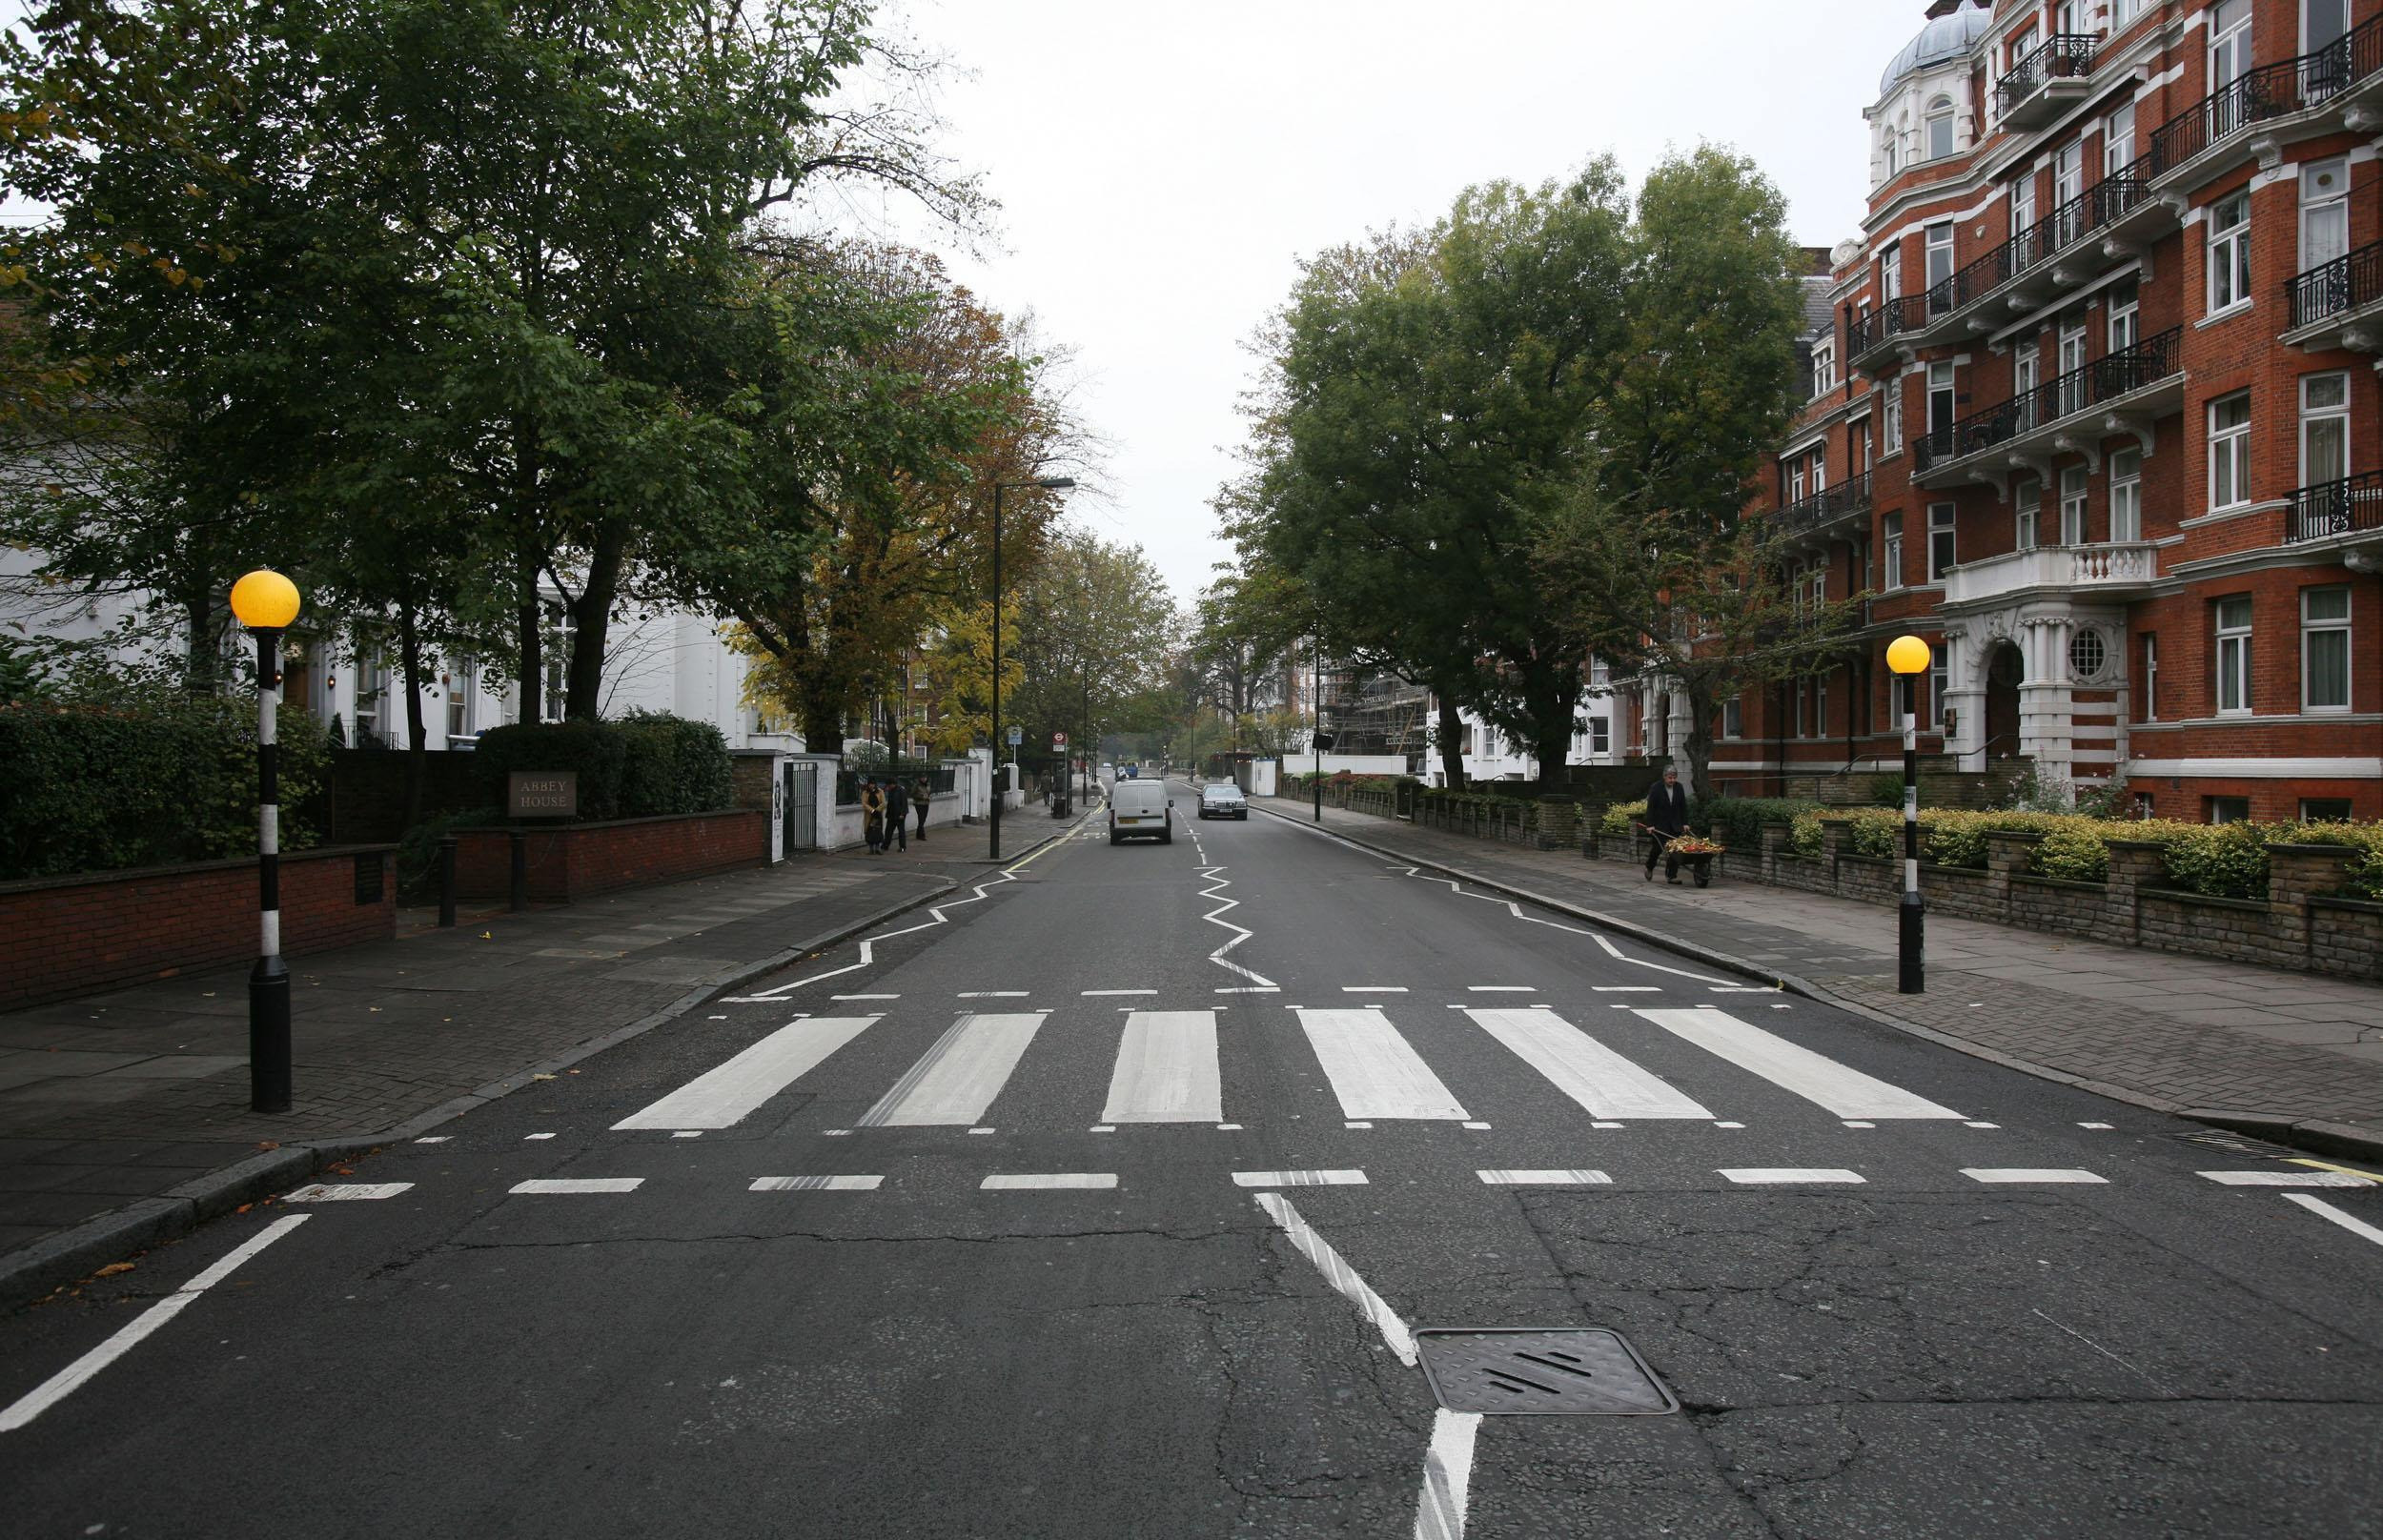 The pedestrian crossing outside the Abbey Road Studios in London, made famous by the Beatles.